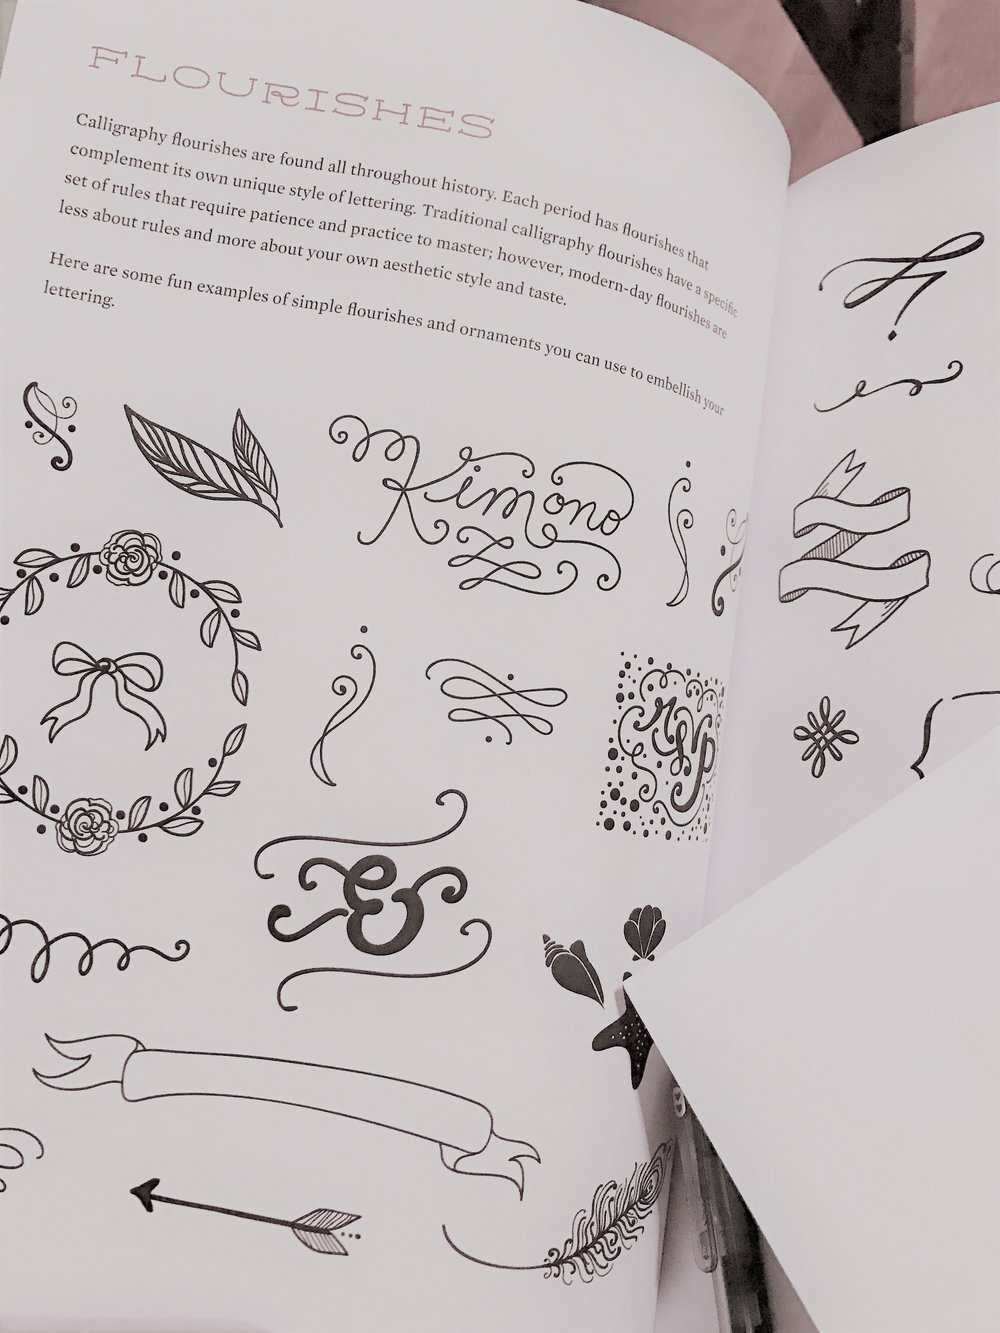 Examples from The Joy of Lettering